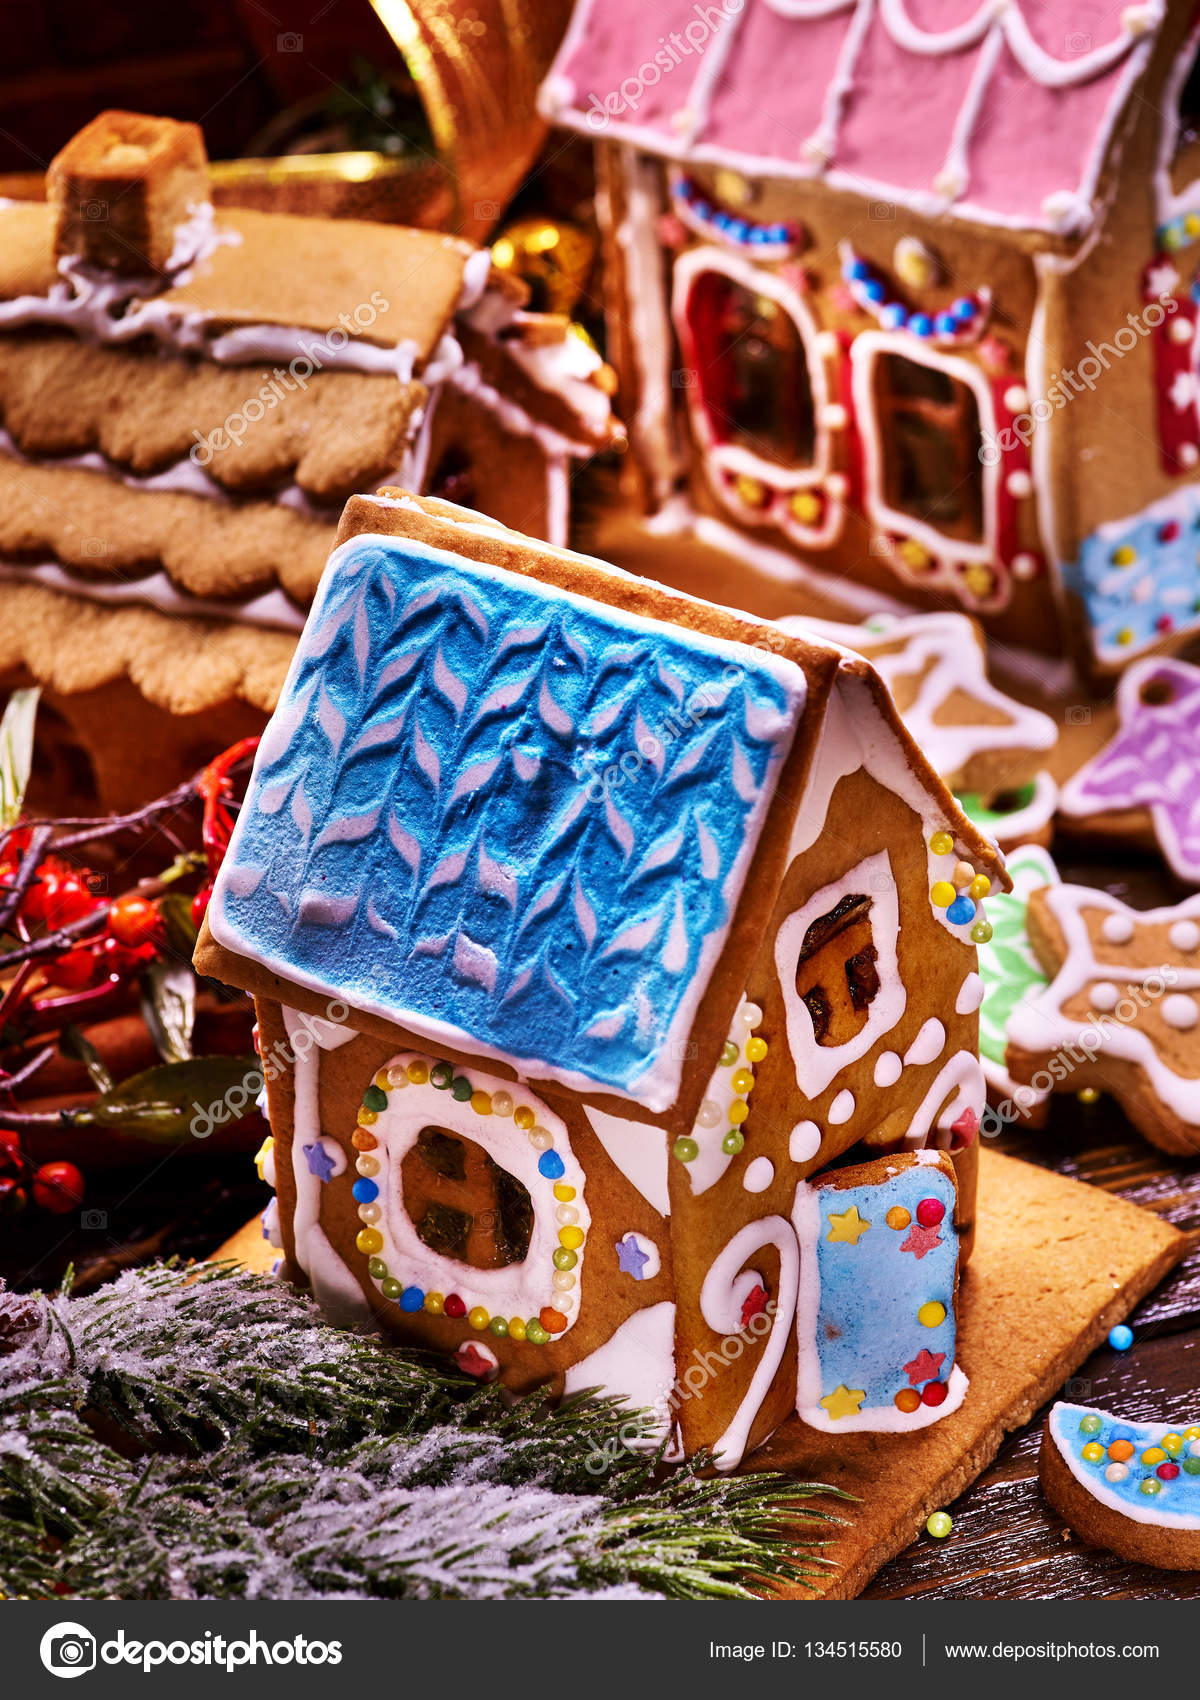 Decorate A Blue Roof House | simple small house design on butterfly roof designs, church roof designs, gingerbread house chimneys, gingerbread house masonry, garden roof designs, birdhouse roof designs, snow roof designs, gingerbread house details, gingerbread house roofing,